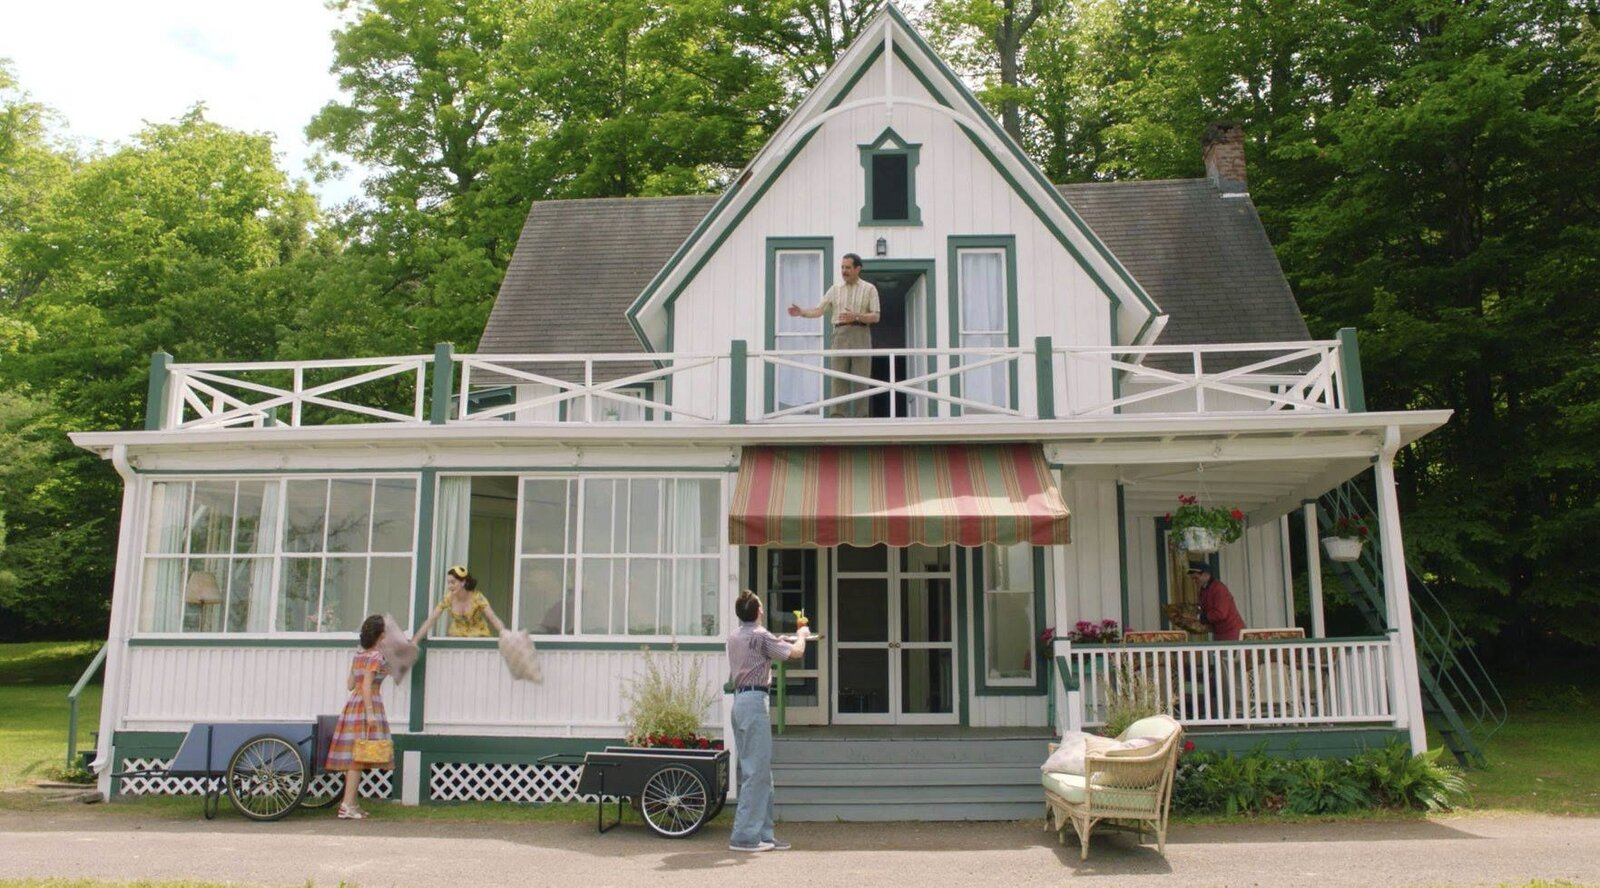 """One of the resort's cottages was depicted as the family's home base during their stay.  Photo 5 of 16 in The Lakeside Resort Featured in """"The Marvelous Mrs. Maisel"""" Lists for $6M in Upstate New York"""